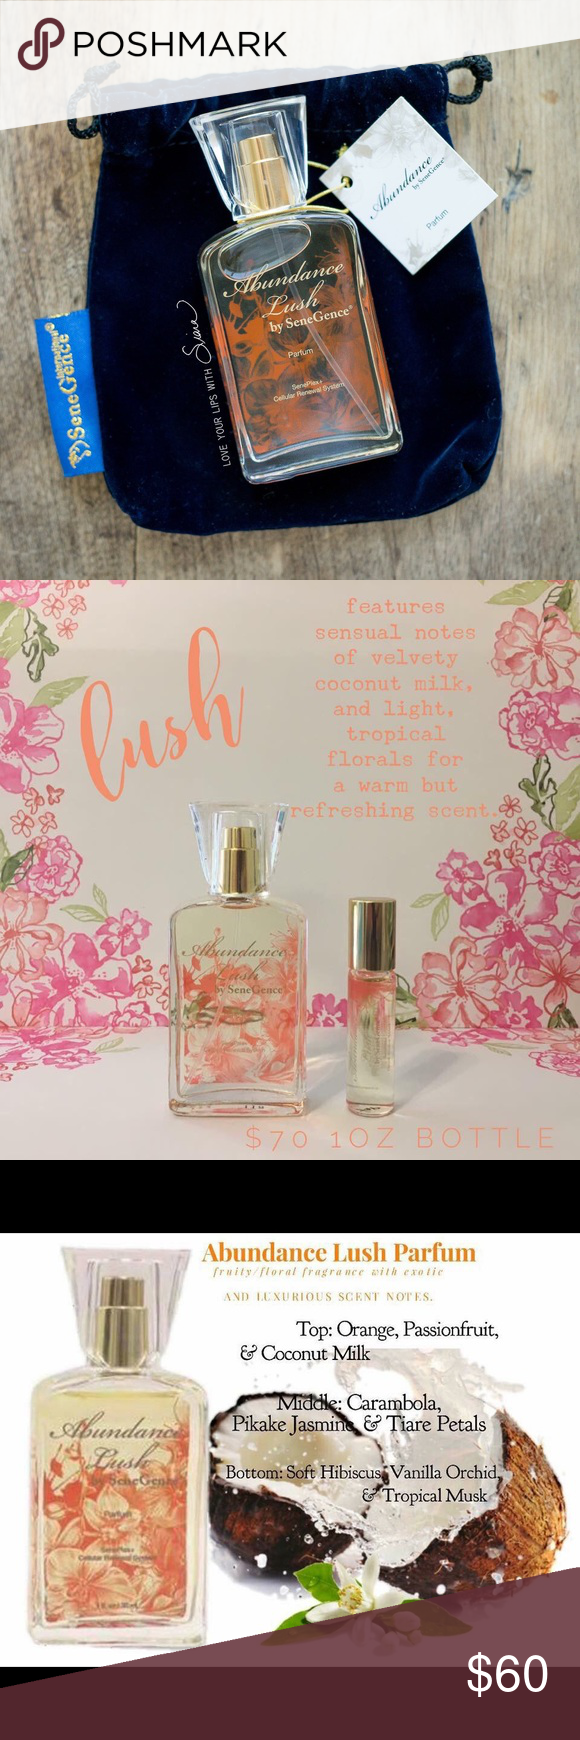 Three Fabulous New Summer Scents For